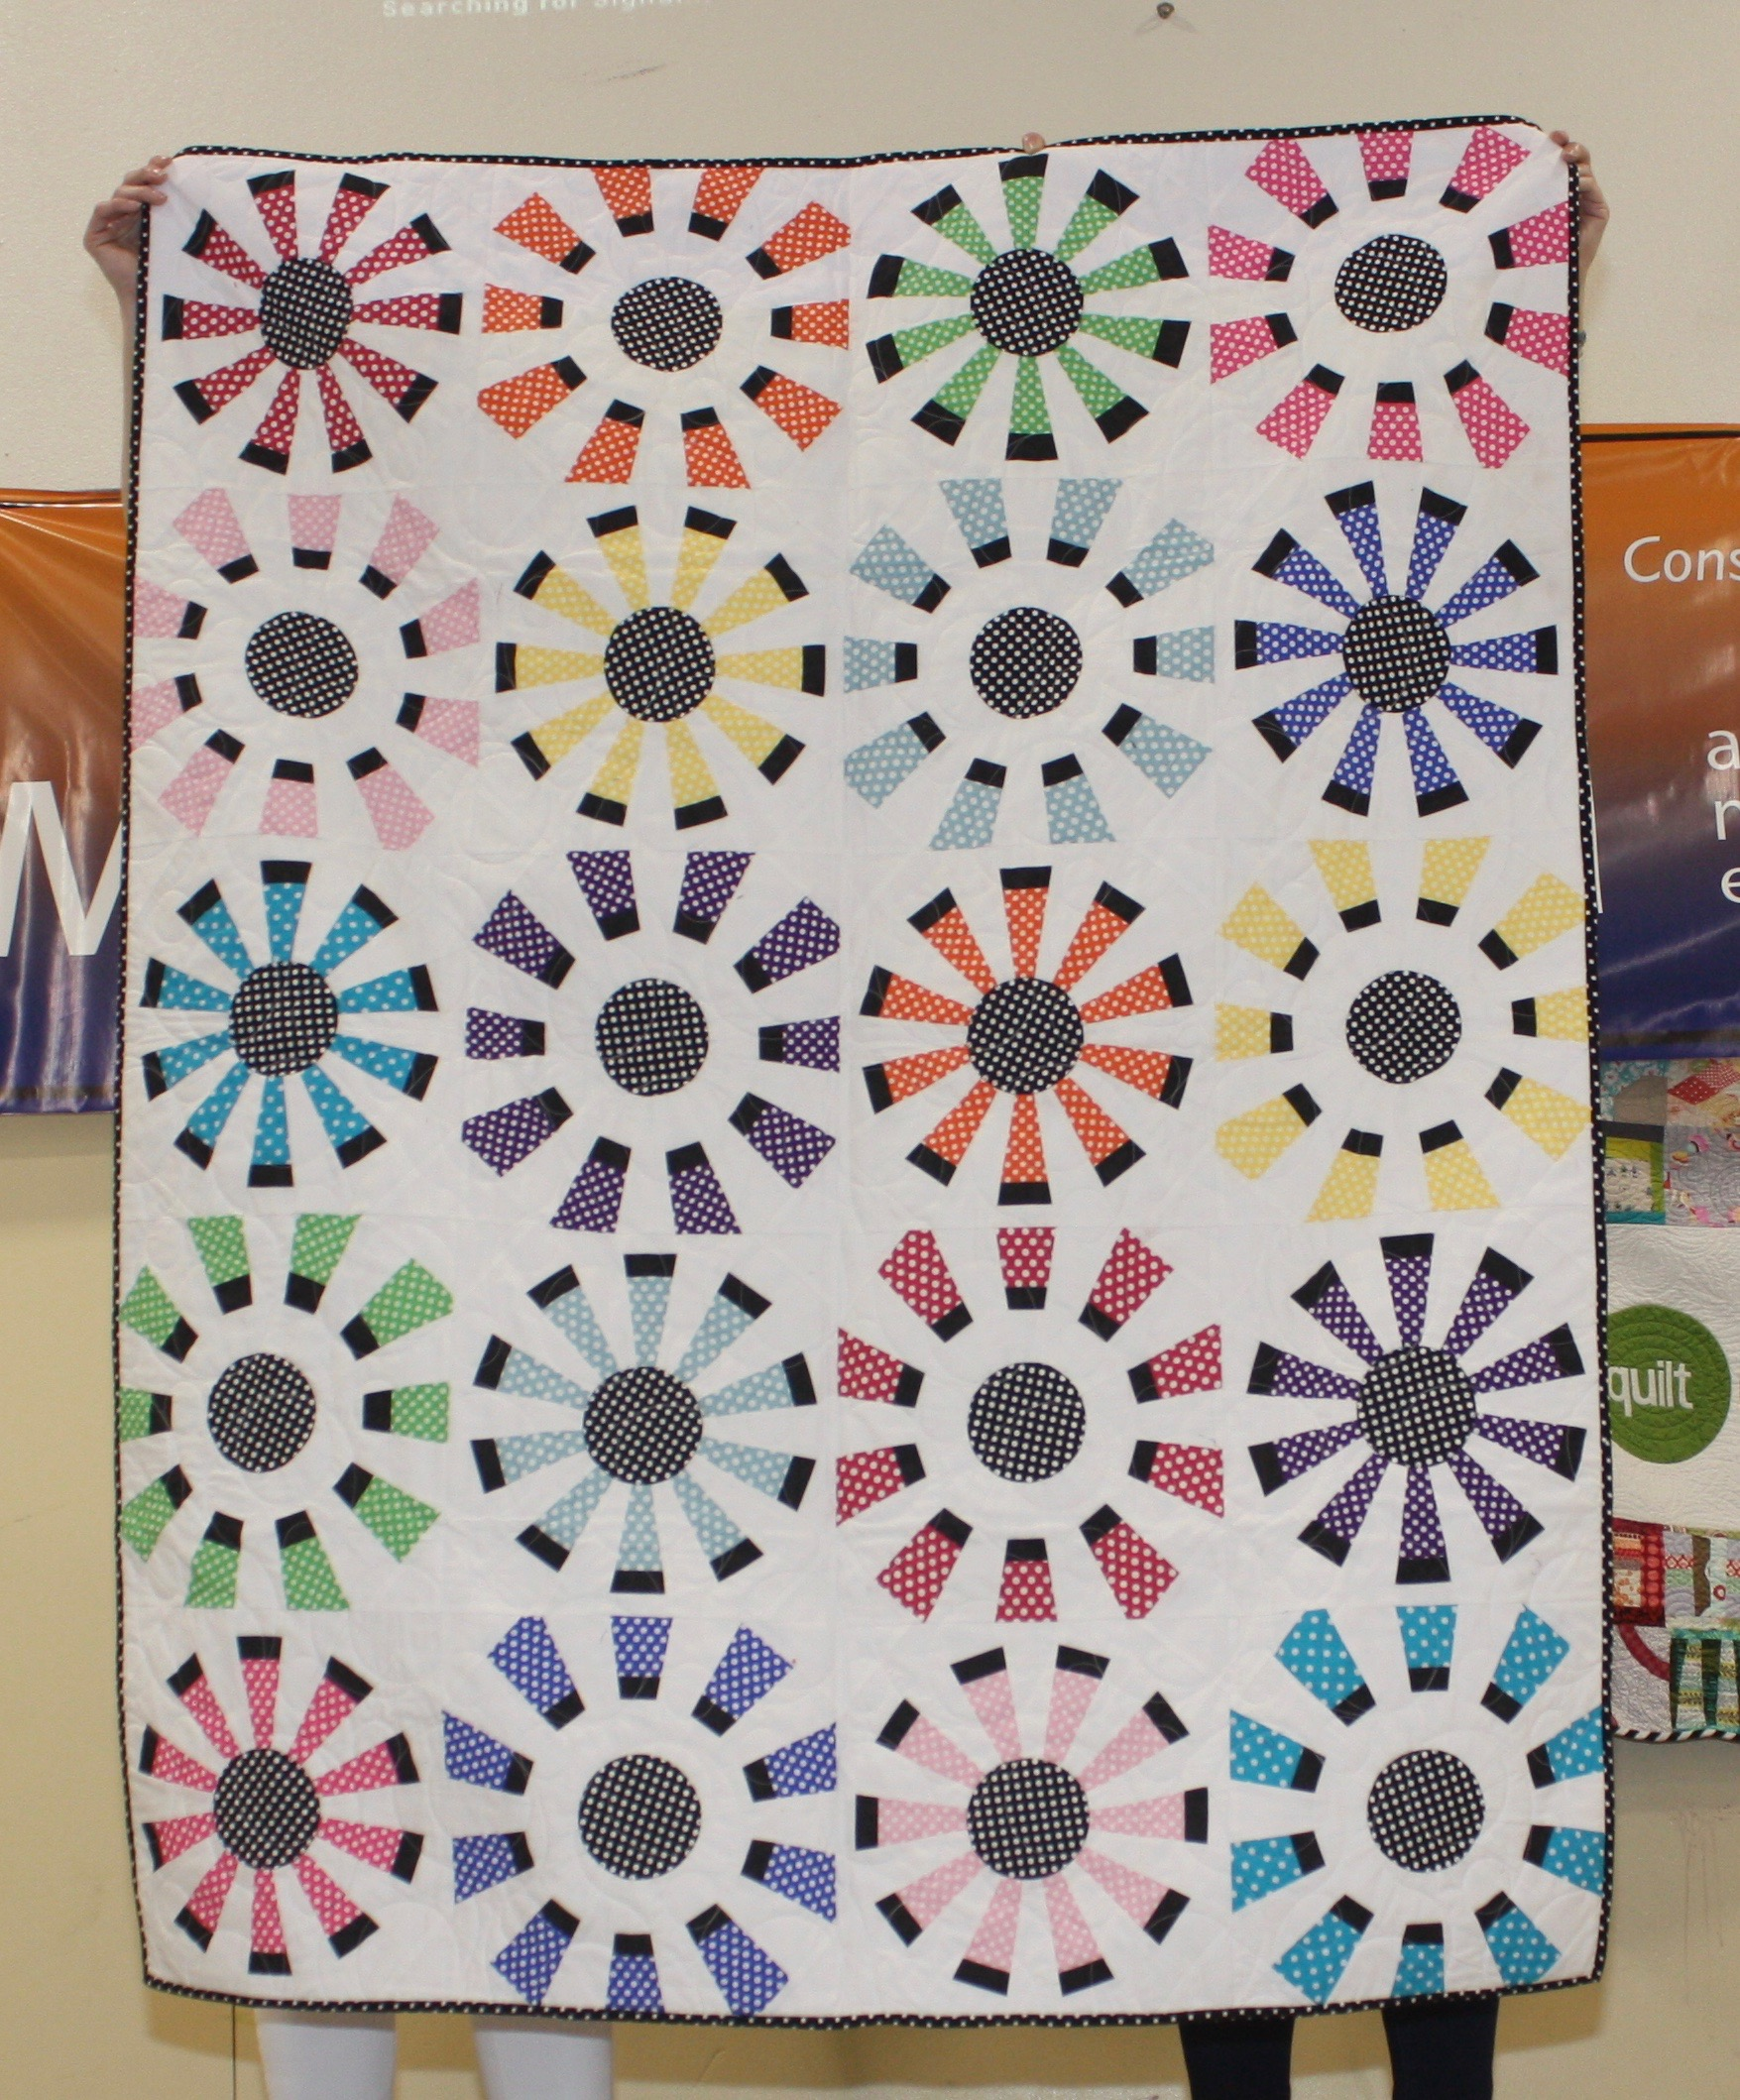 Jennifer Gleich  Dots All Around  Pattern: Modern Dresden  Quilted by Brenda Anderson  @Jengaile0927